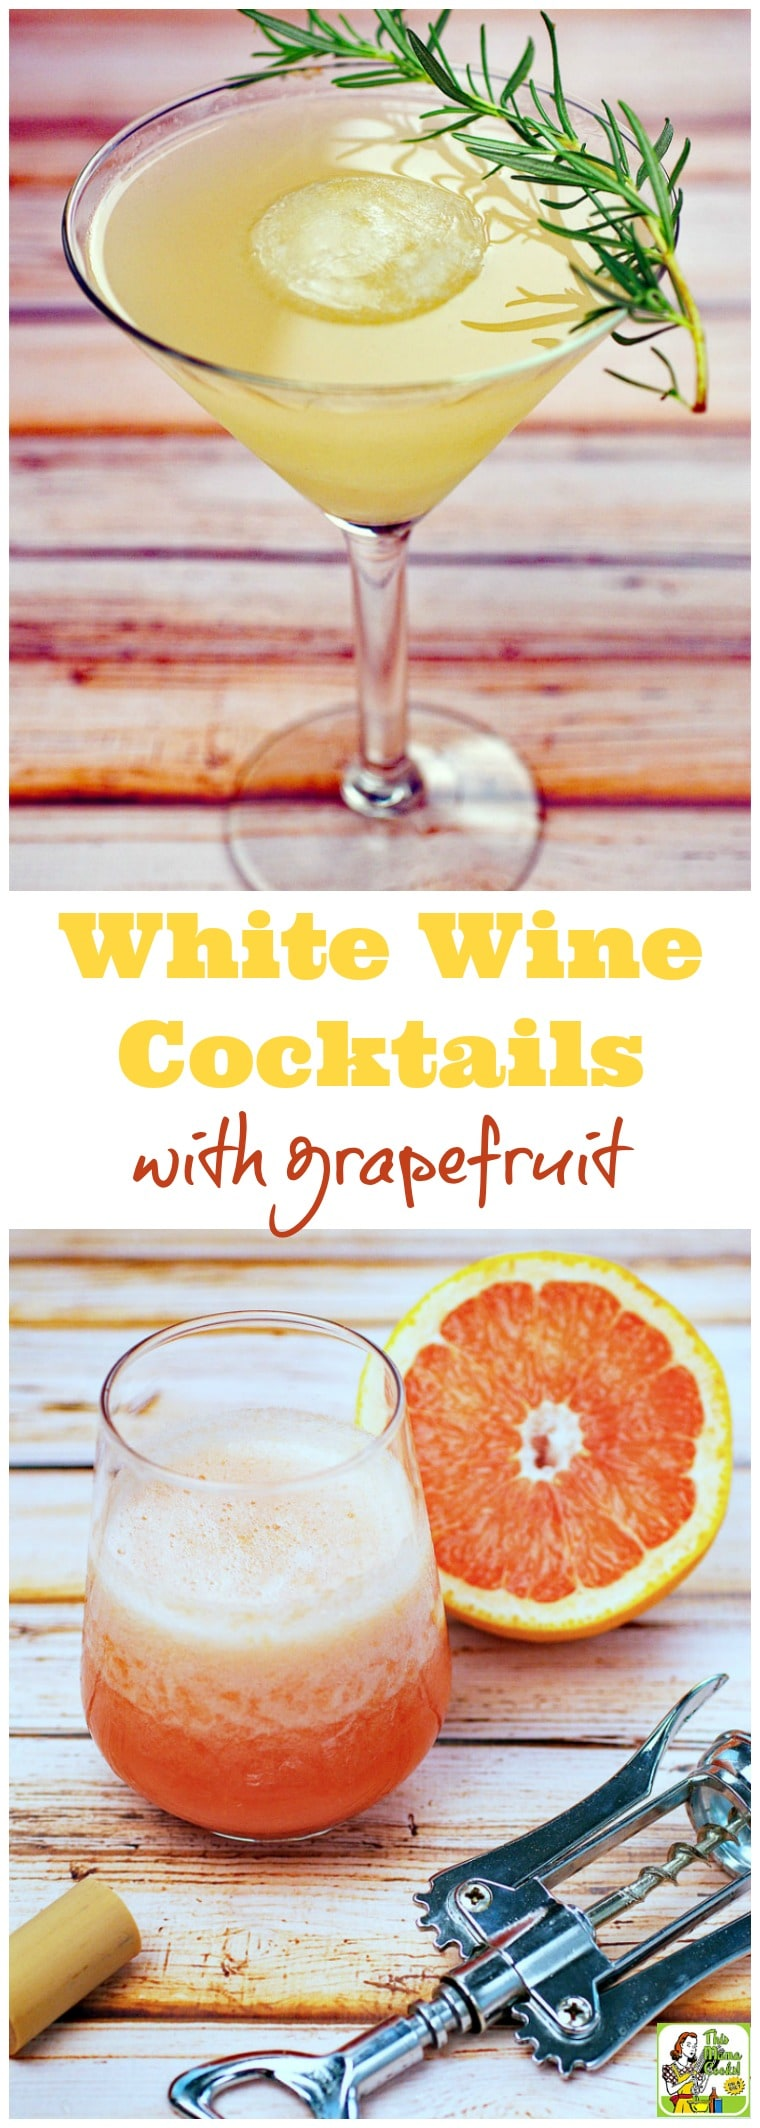 Two white wine cocktail recipes made with grapefruit. The Frozen Wine Cocktails recipe features whole pieces of frozen grapefruit. The Skinny White Wine Cocktails recipe is lightened up with grapefruit seltzer. Both are sweetened with no calorie stevia. Click to get these no guilt cocktails that are perfect for Mother\'s Day brunches, summer BBQs, or girls night in parties.